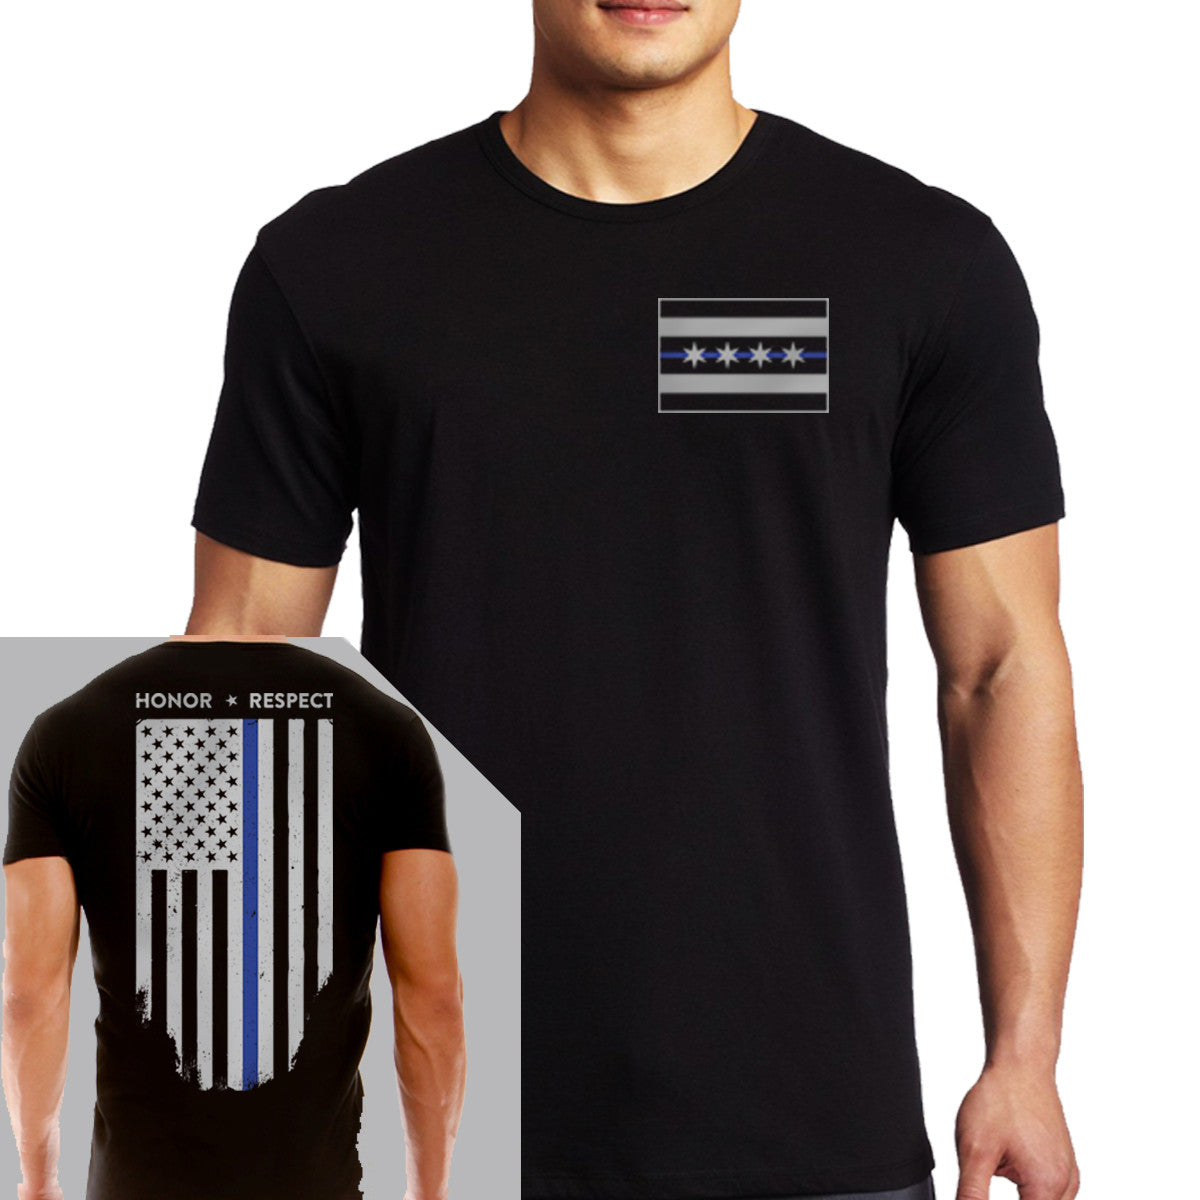 6c040ef8d079 Men's T-Shirt - Chicago Thin Blue Line Flag - Thin Blue Line USA ...